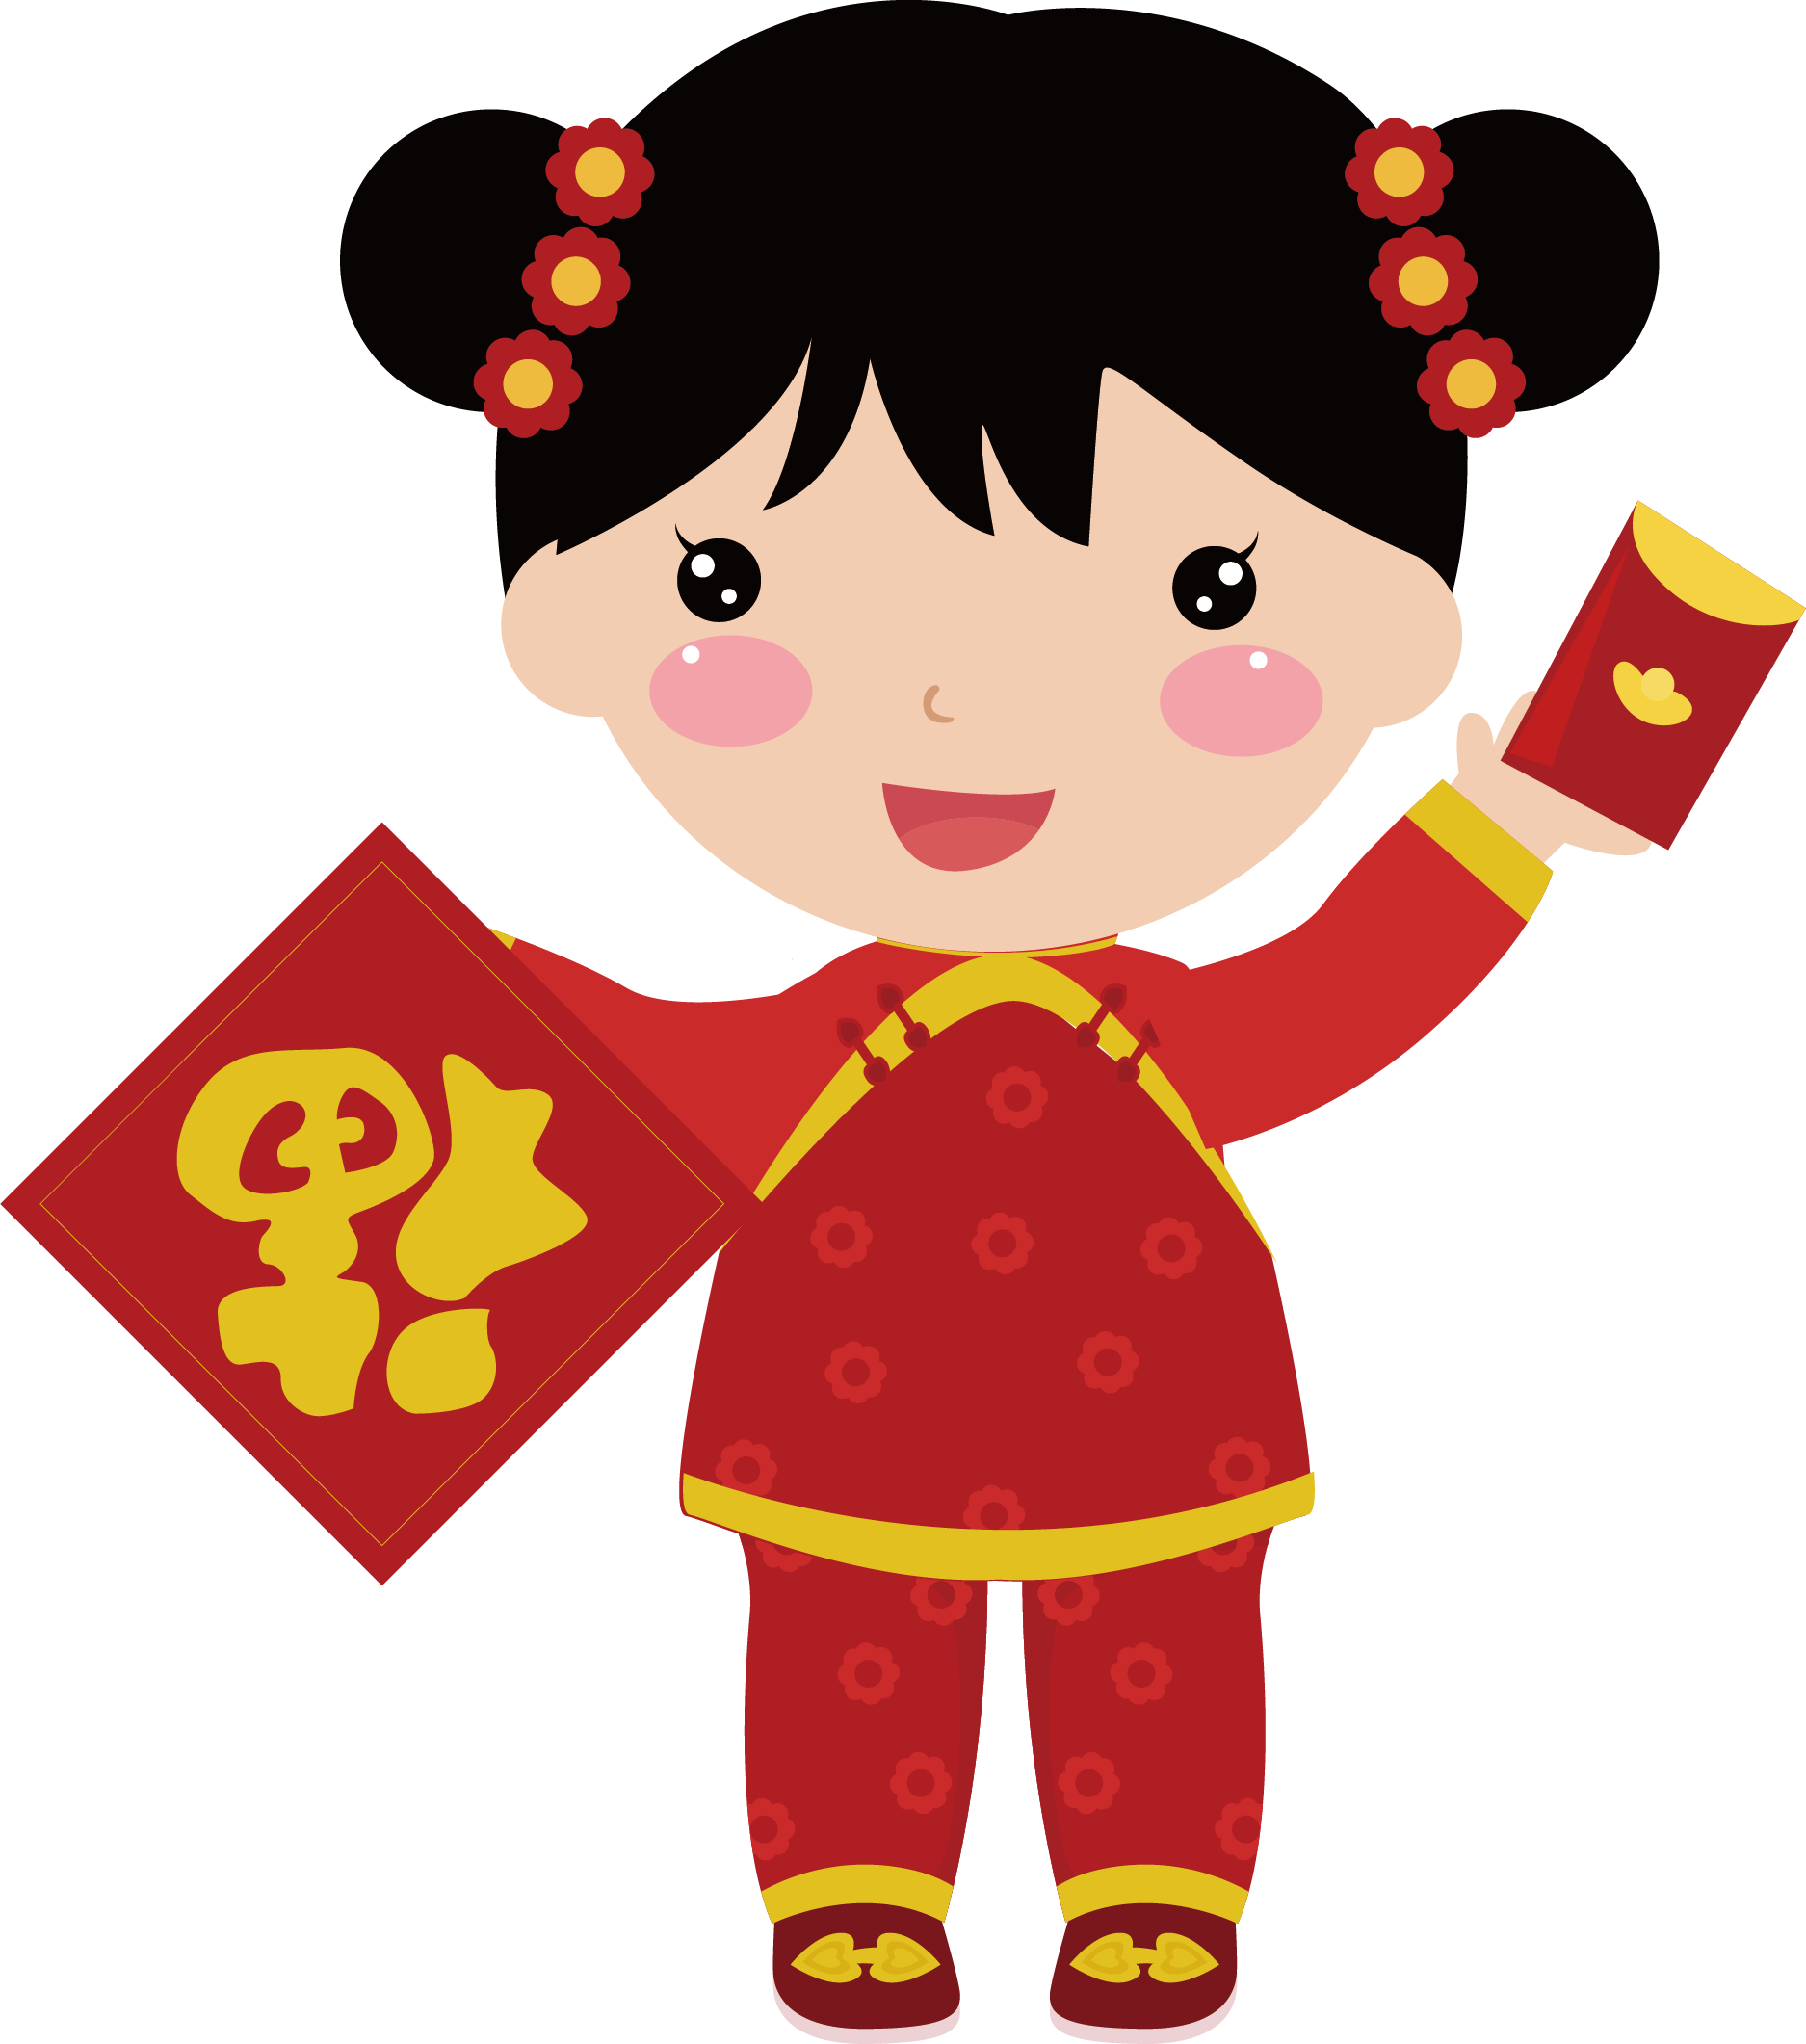 Dolls clipart red doll. Clip arts for free